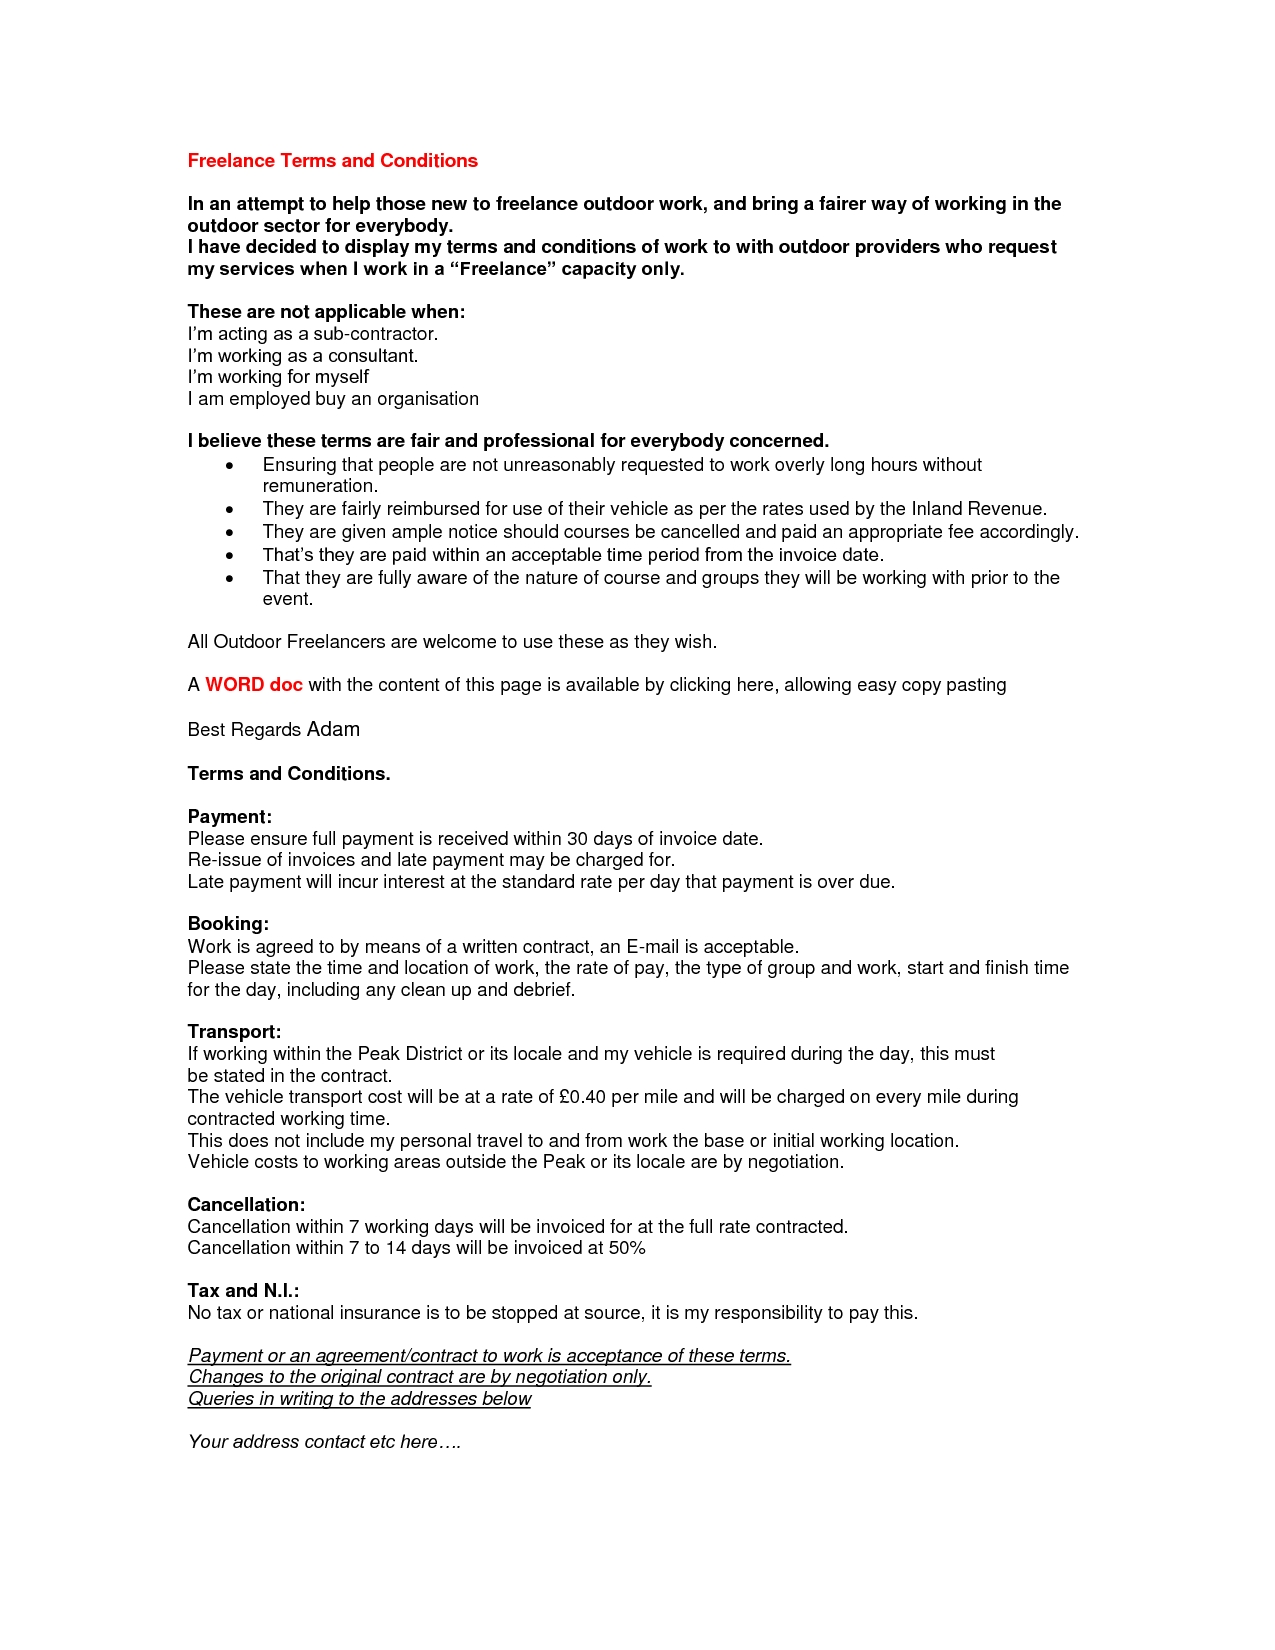 writing an invoice for freelance work sample invoice for writing an invoice